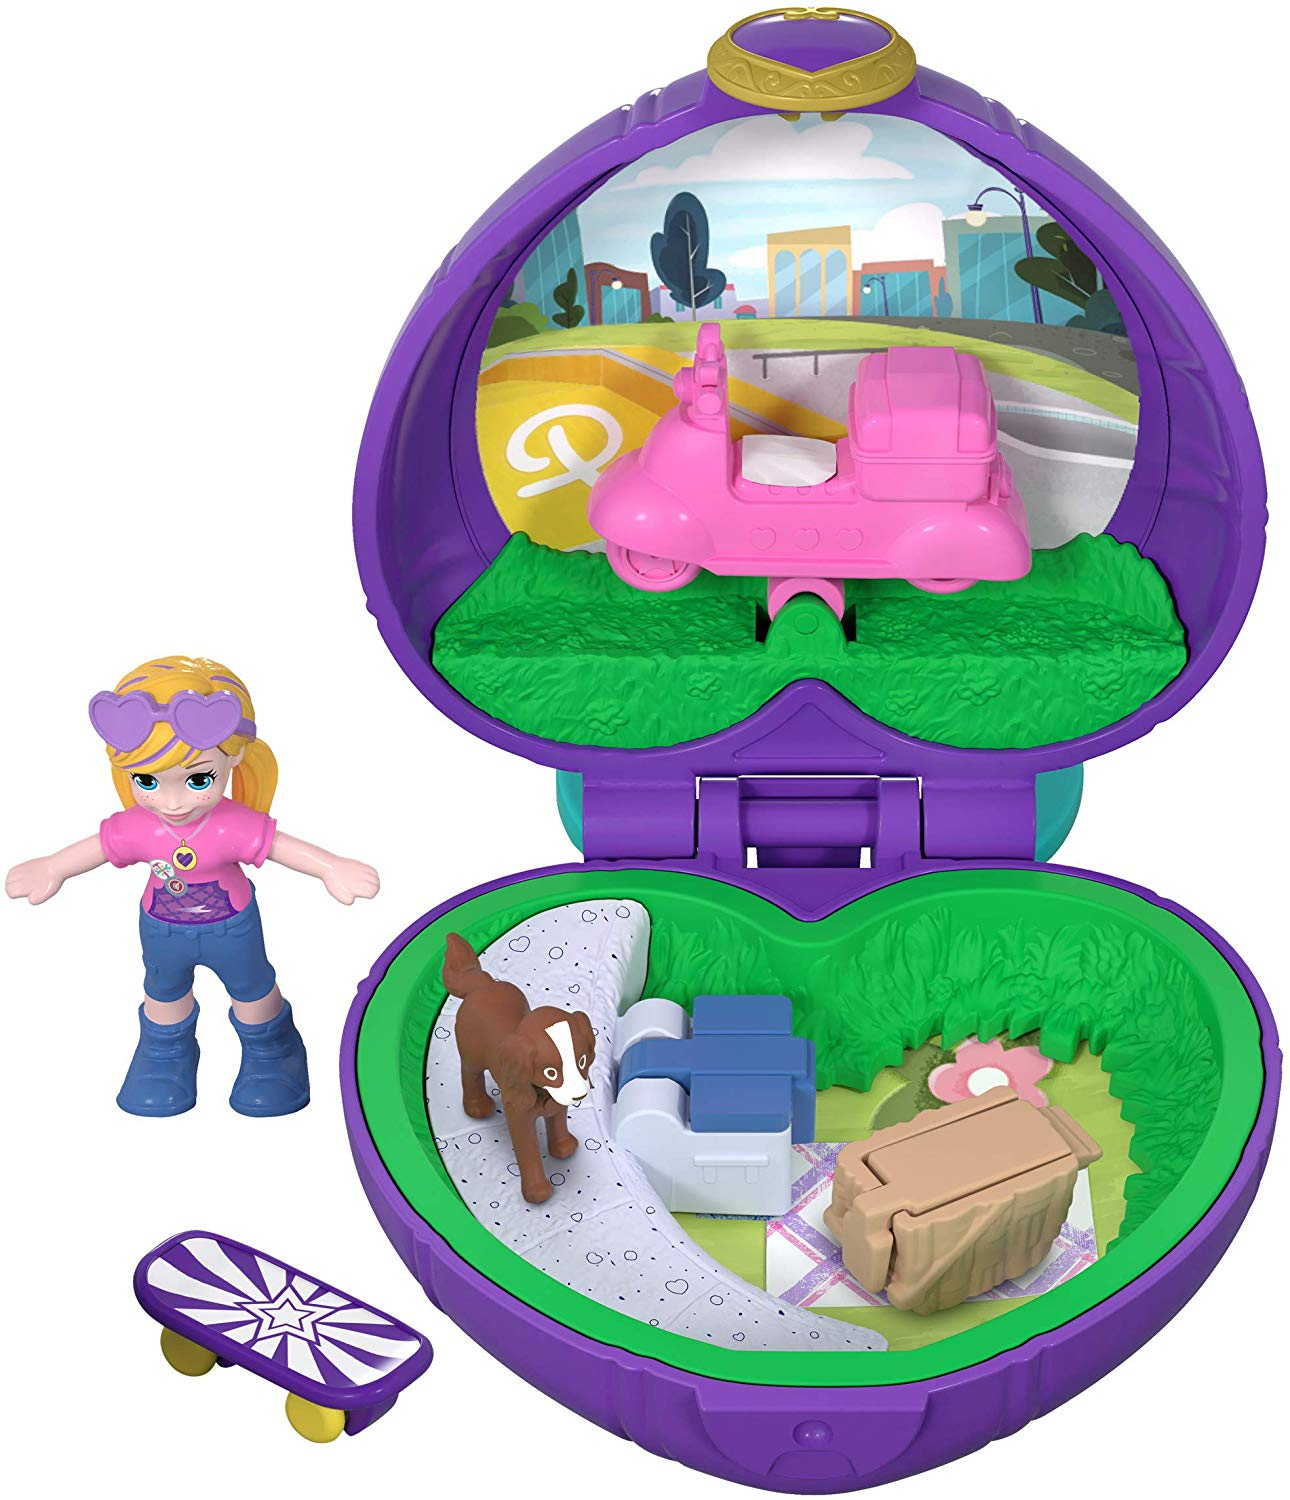 Polly Pocket FRY30 Tiny Pocket Places Picnic Compact Play Set, Multi-Colour